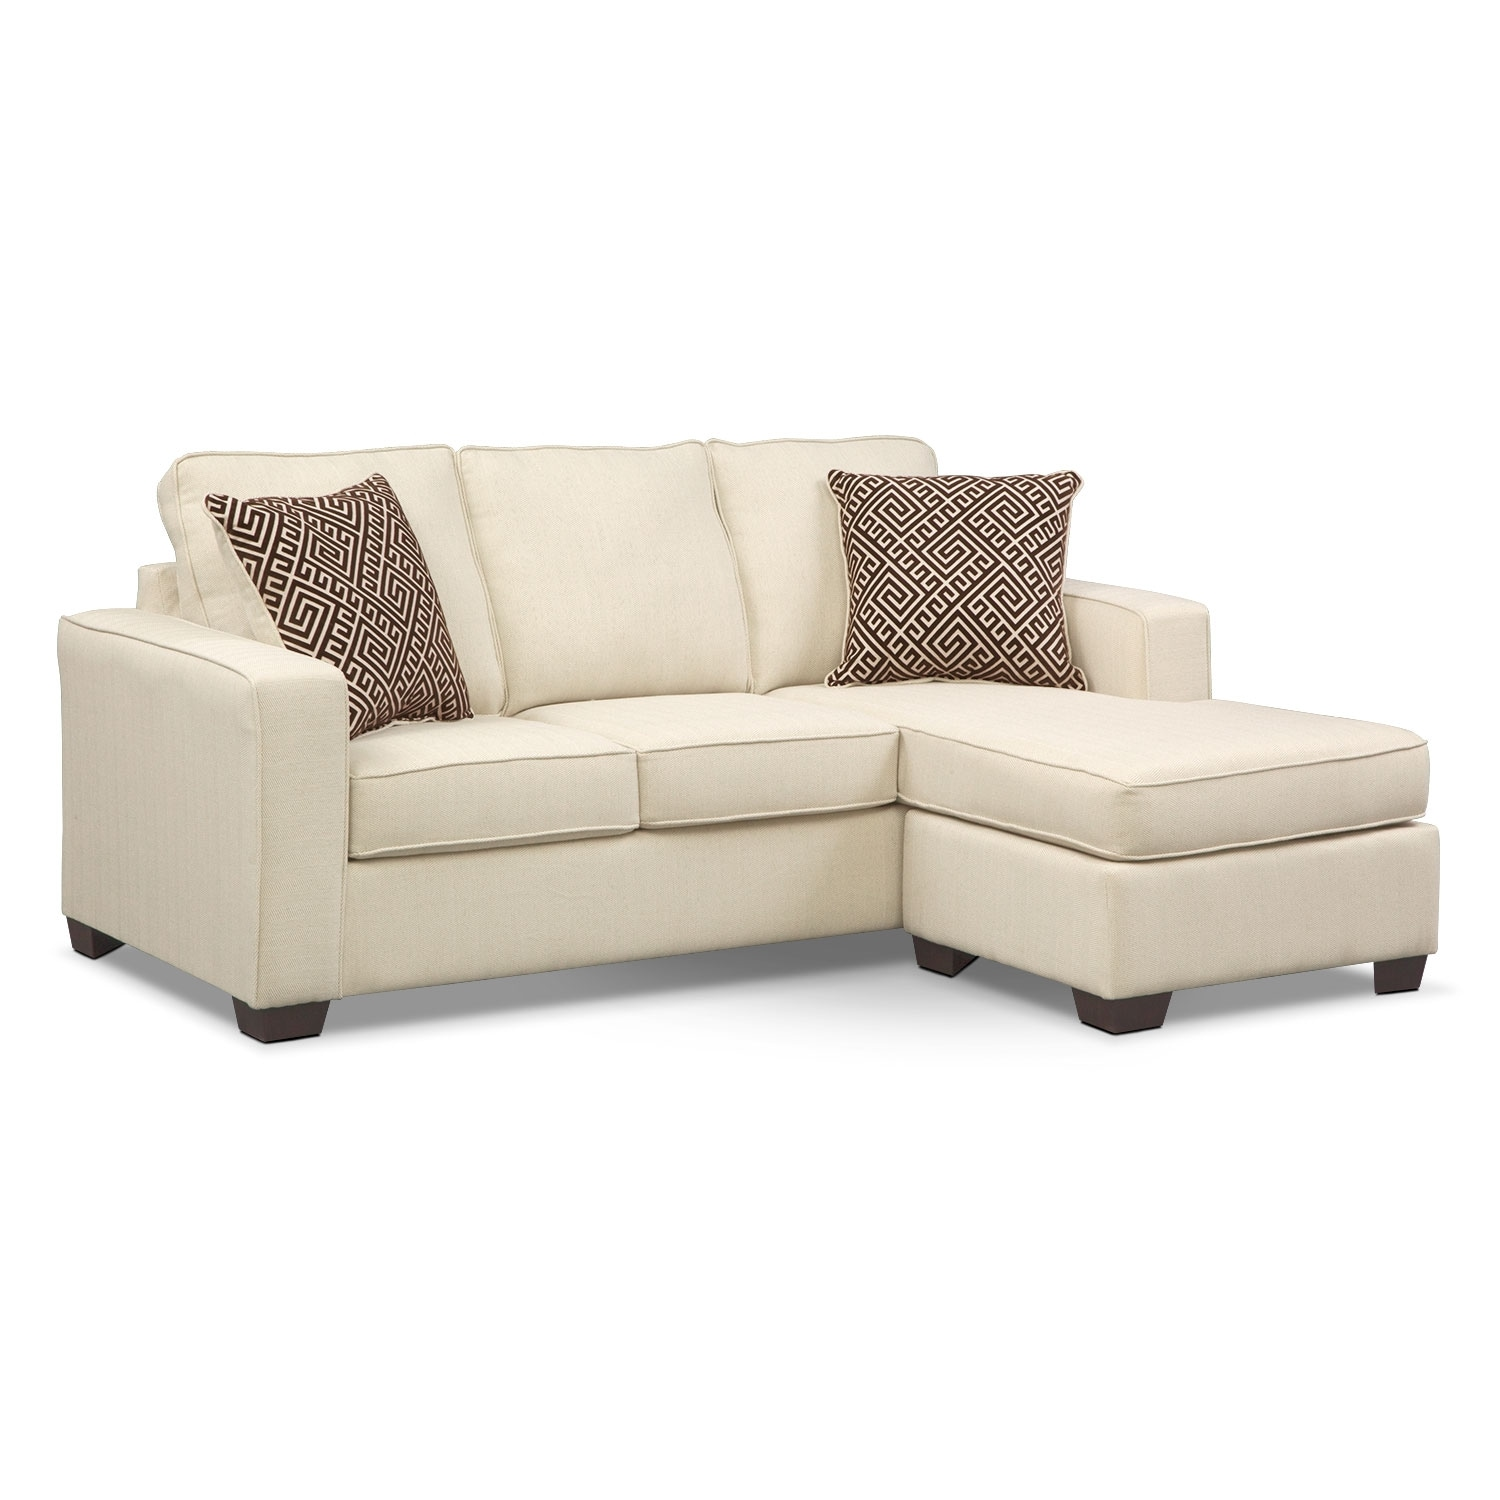 Sterling beige queen memory foam sleeper sofa w chaise for Chaise and ottoman